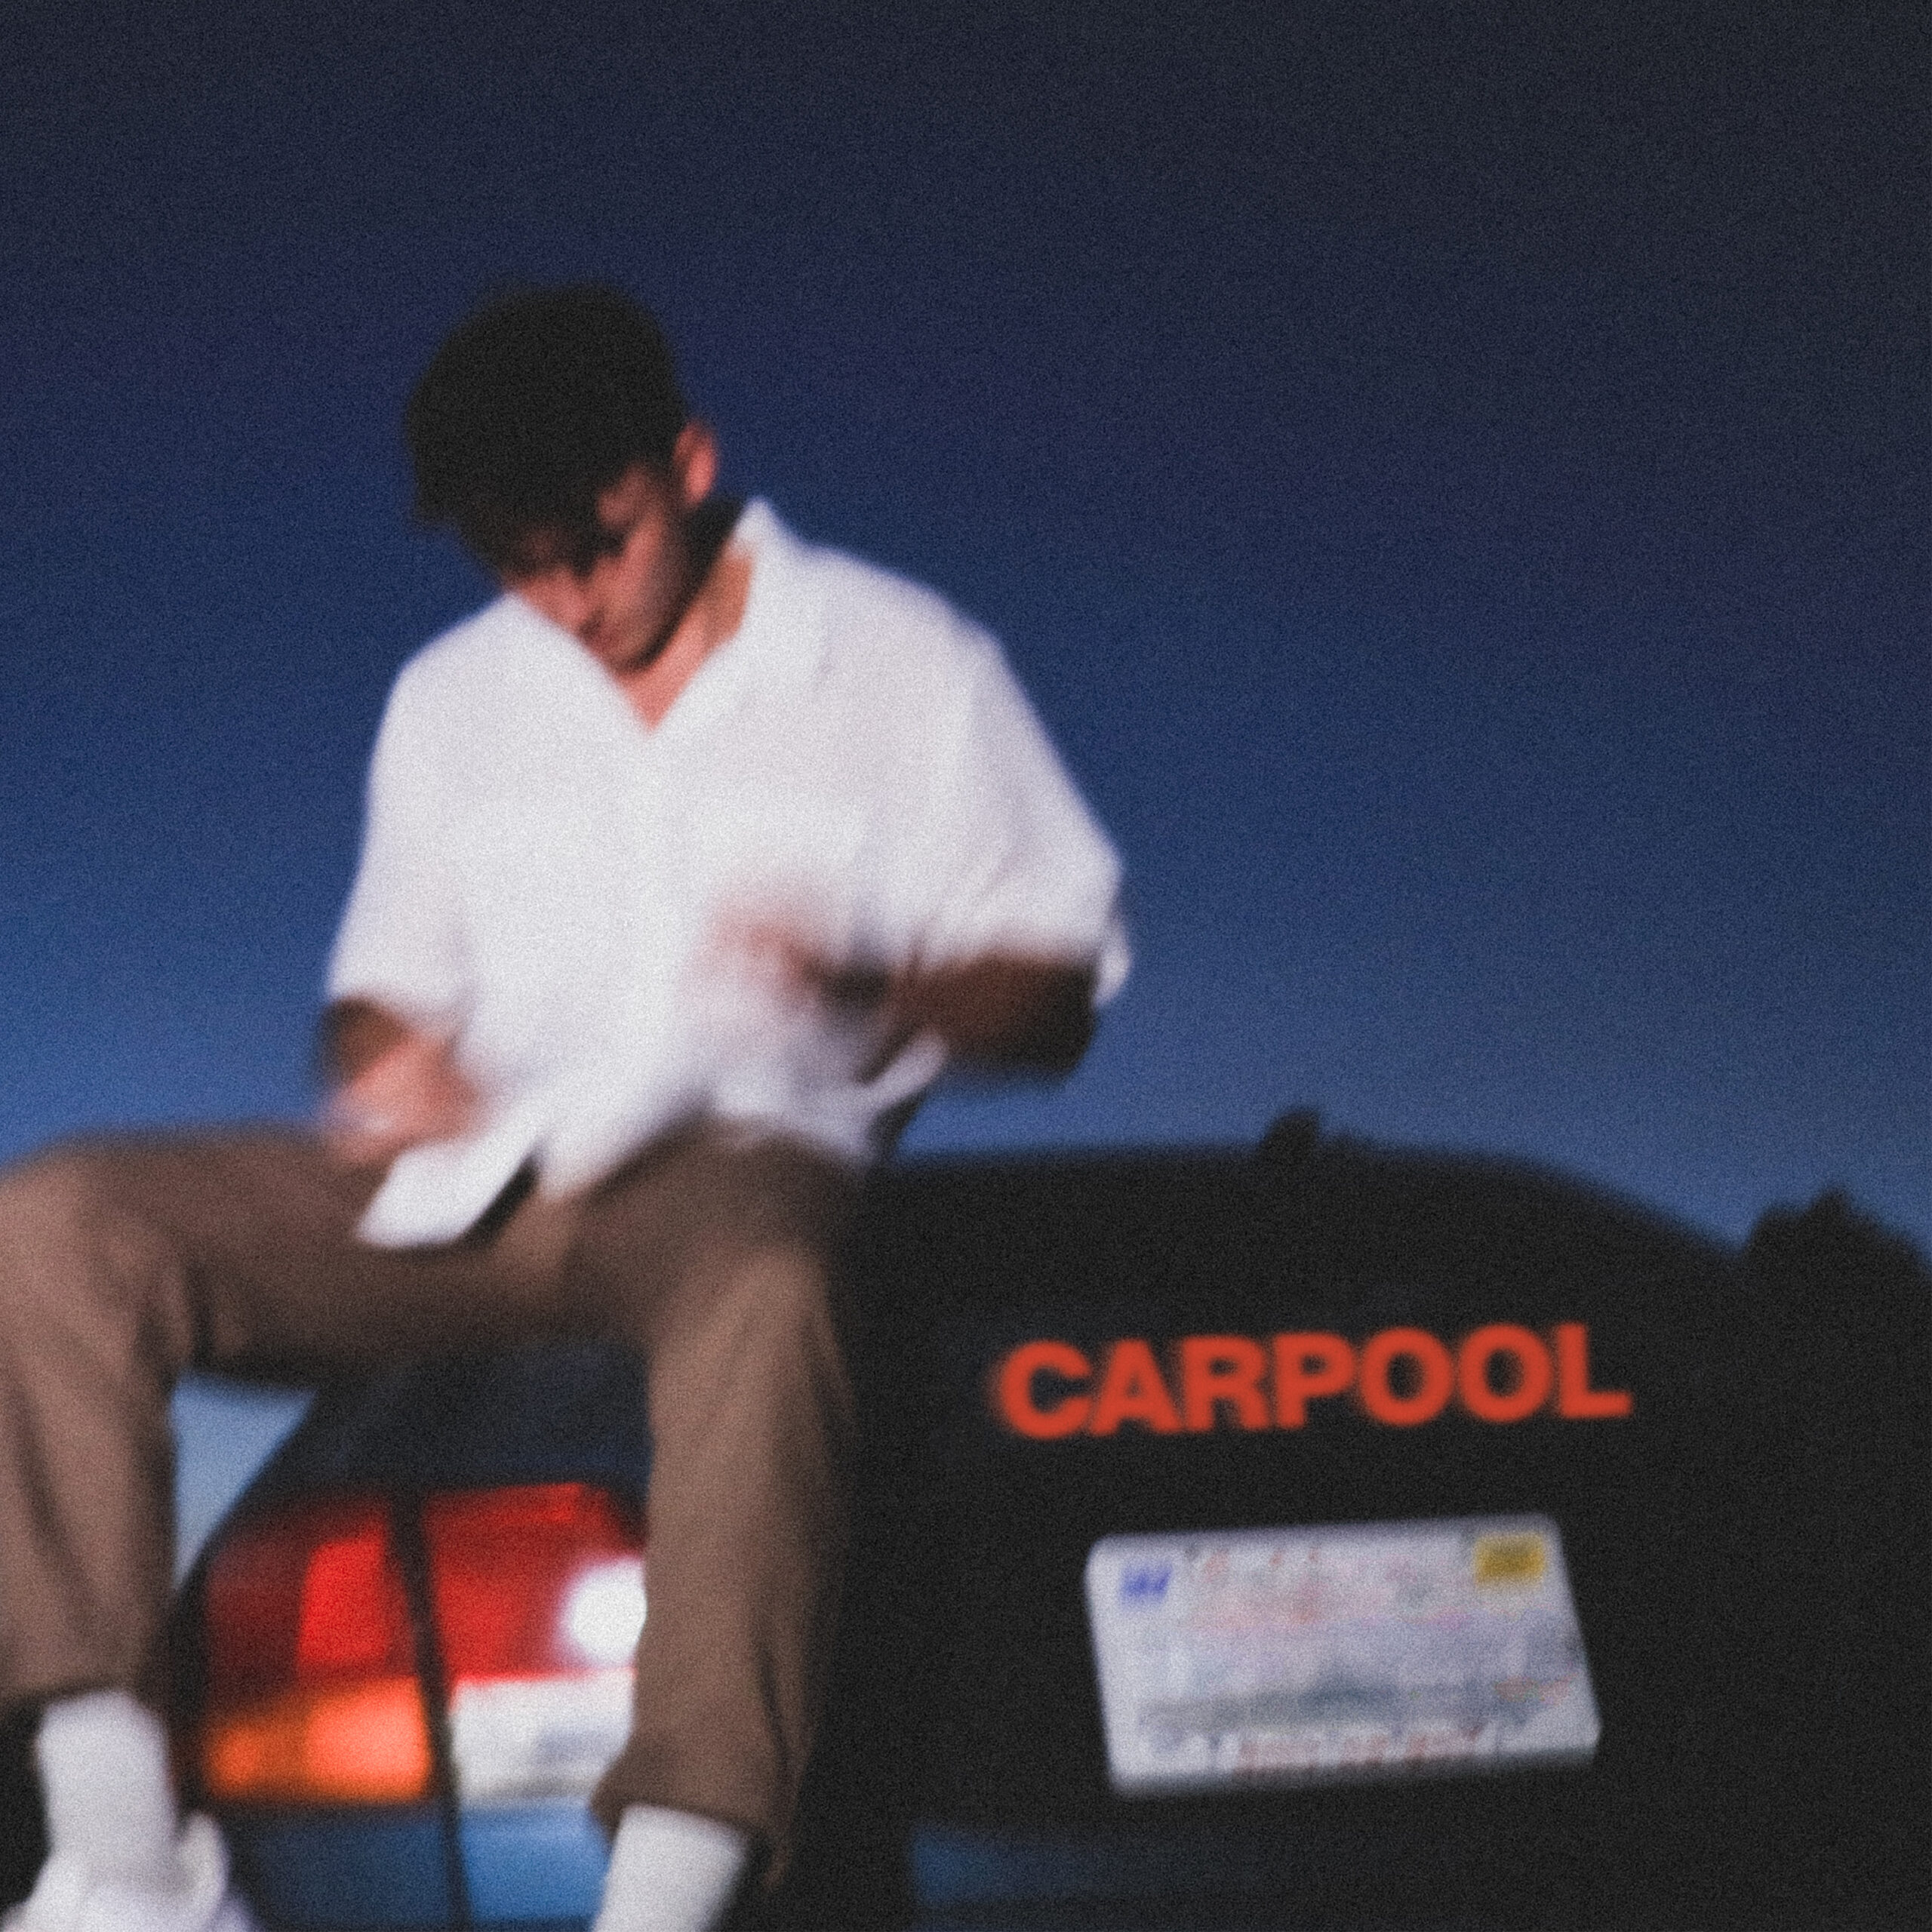 Zachary Knowles 'carpool single' shot by Josh Hymowitz (Cornerstone) for 360 Magazine